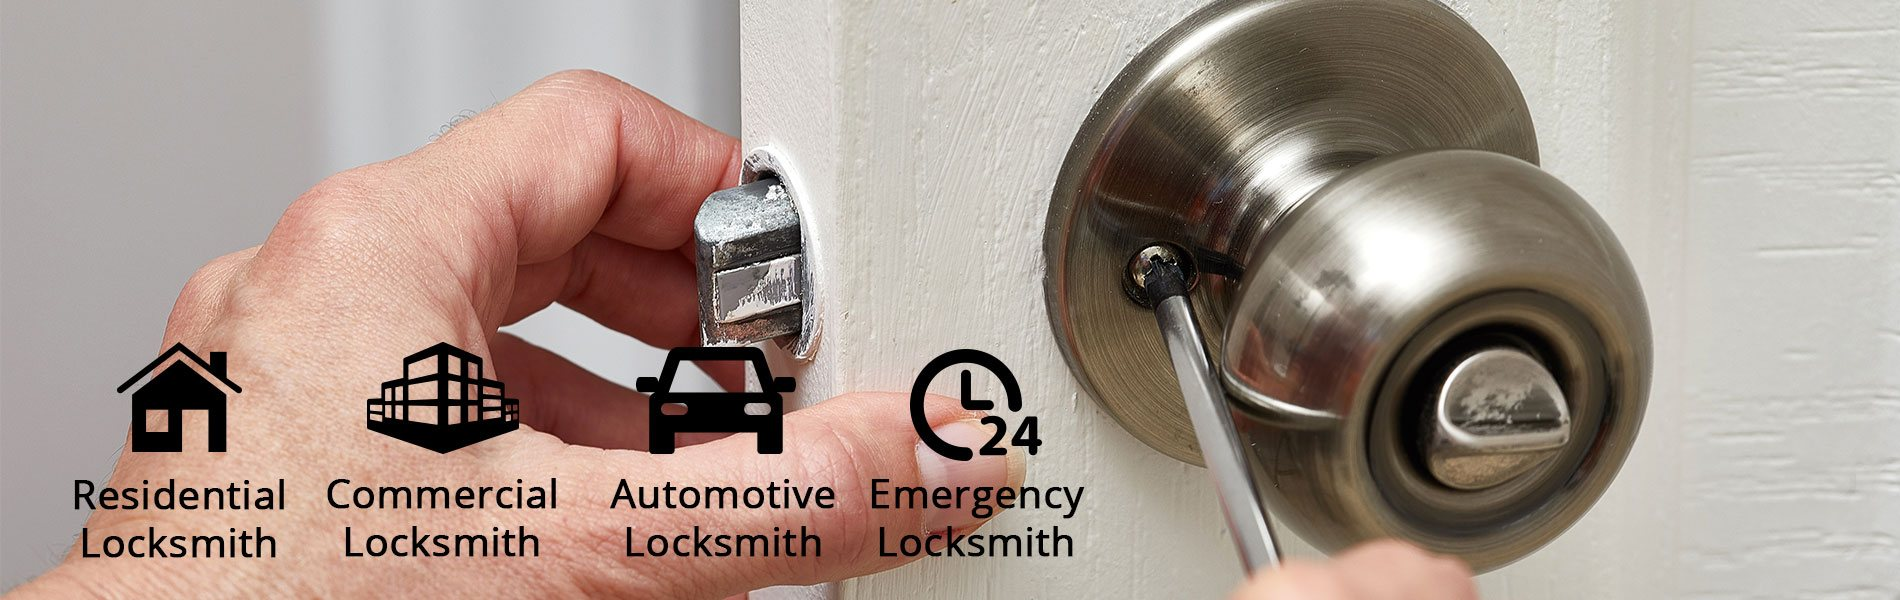 Lock Locksmith Services Houston, TX 713-470-0691